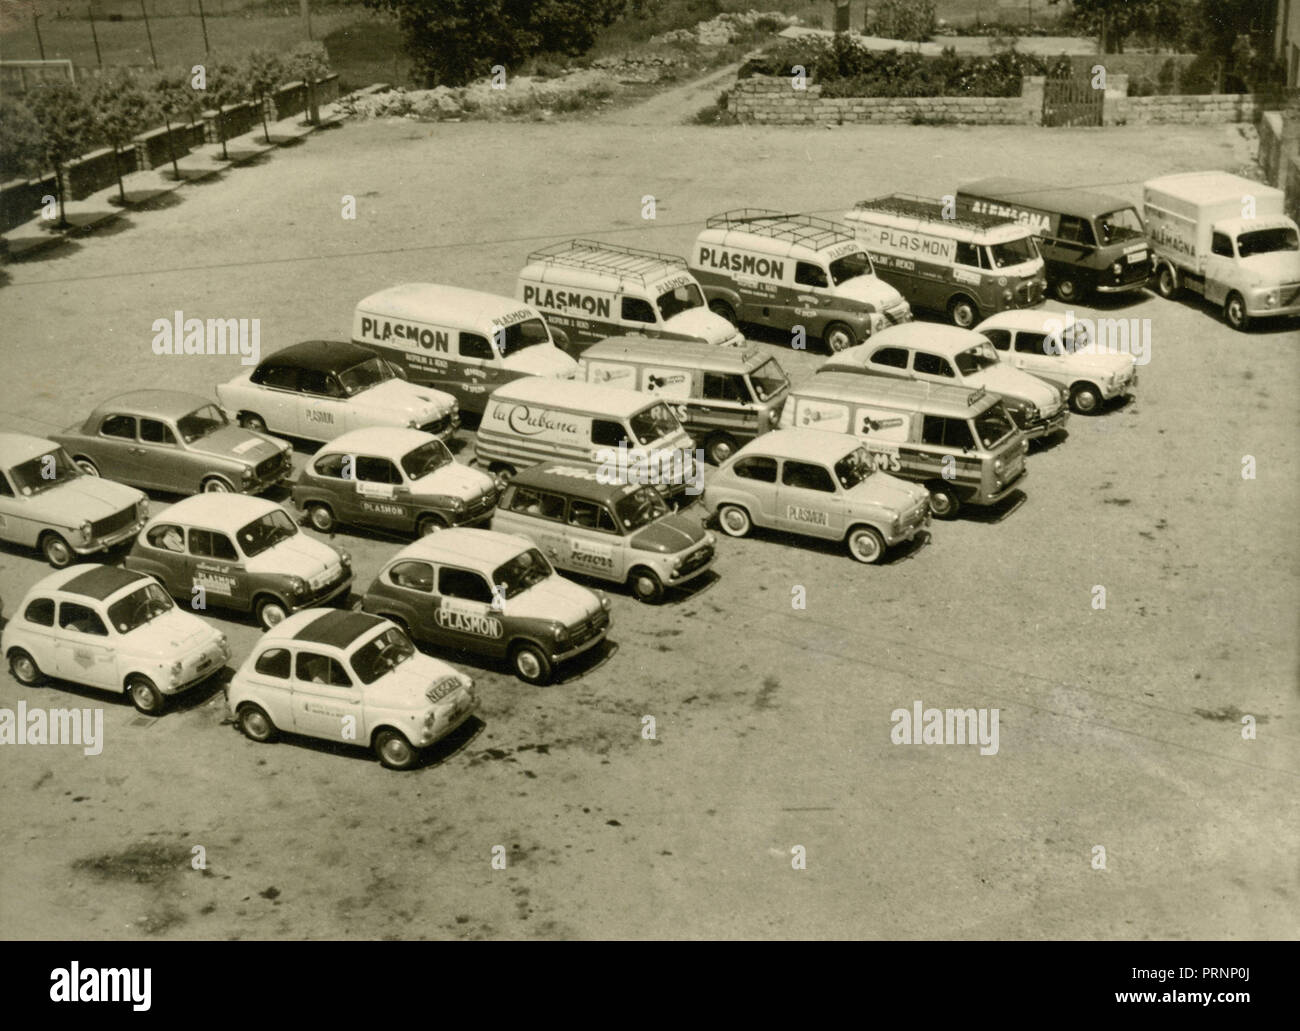 Parked cars advertising Plasmon products, Italy 1960s - Stock Image